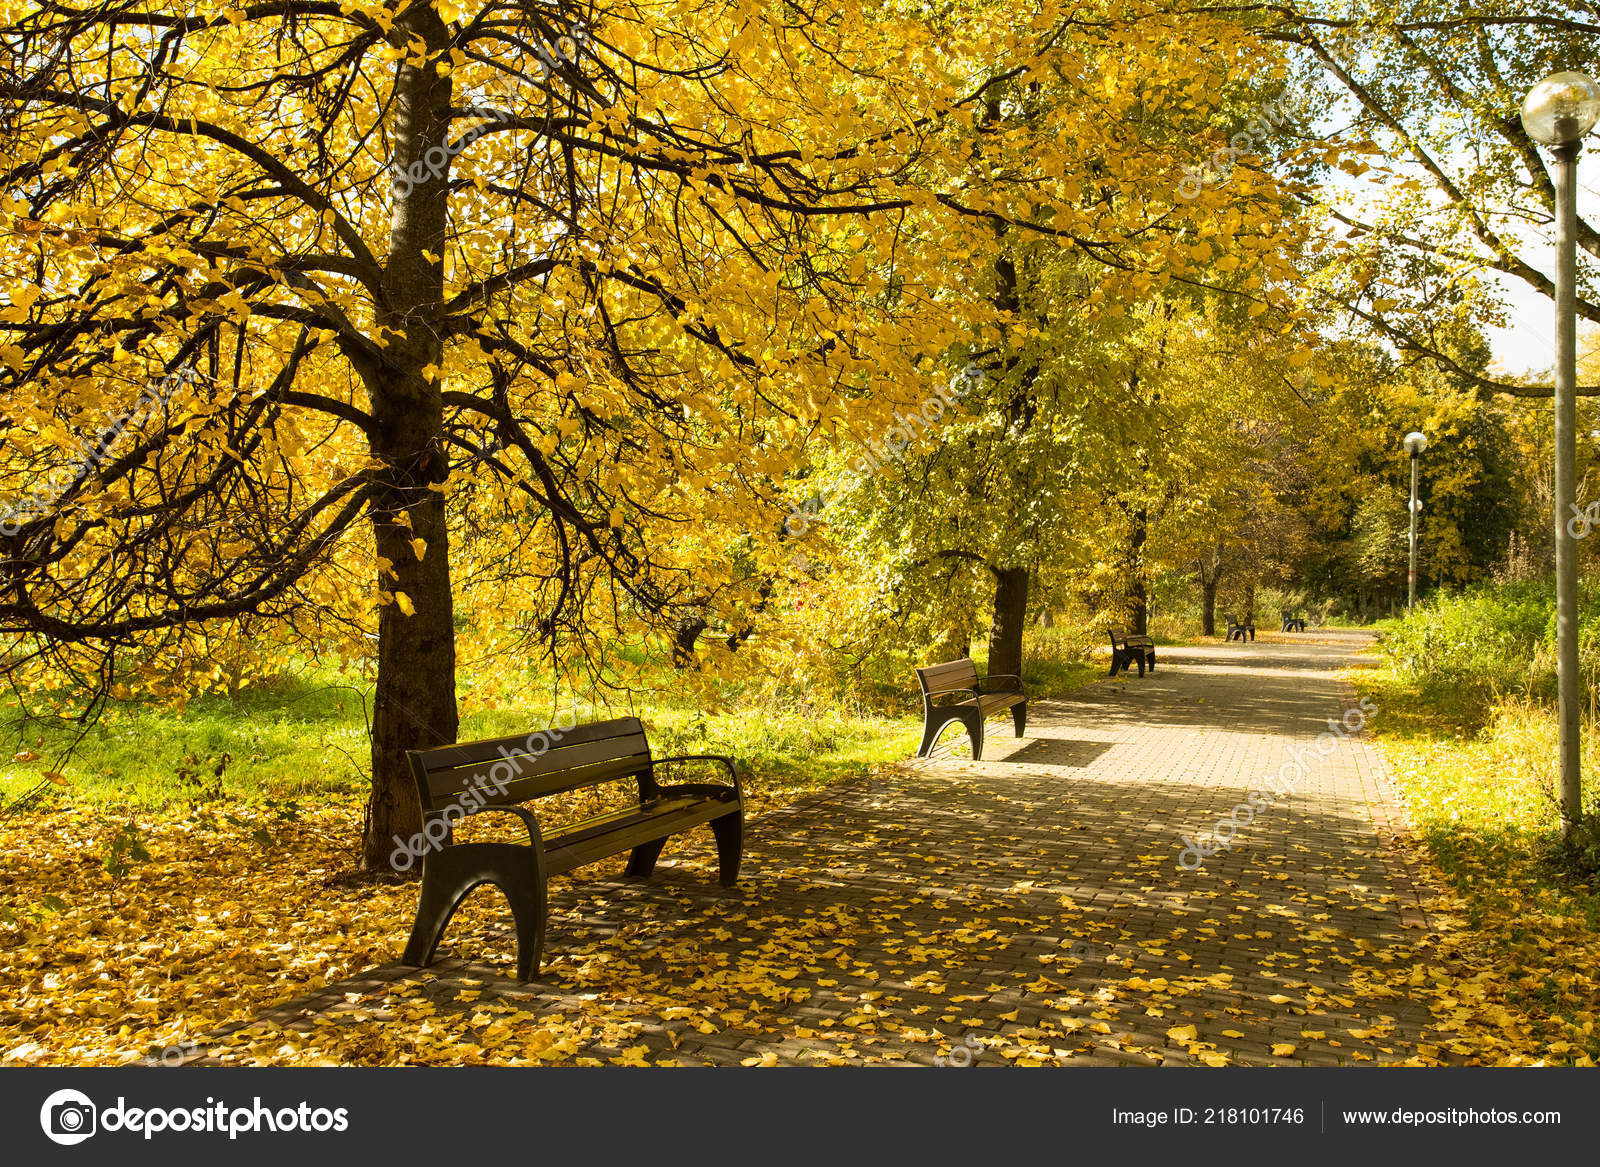 Beautiful Scenic Autumn Landscape Wooden Benches Trees